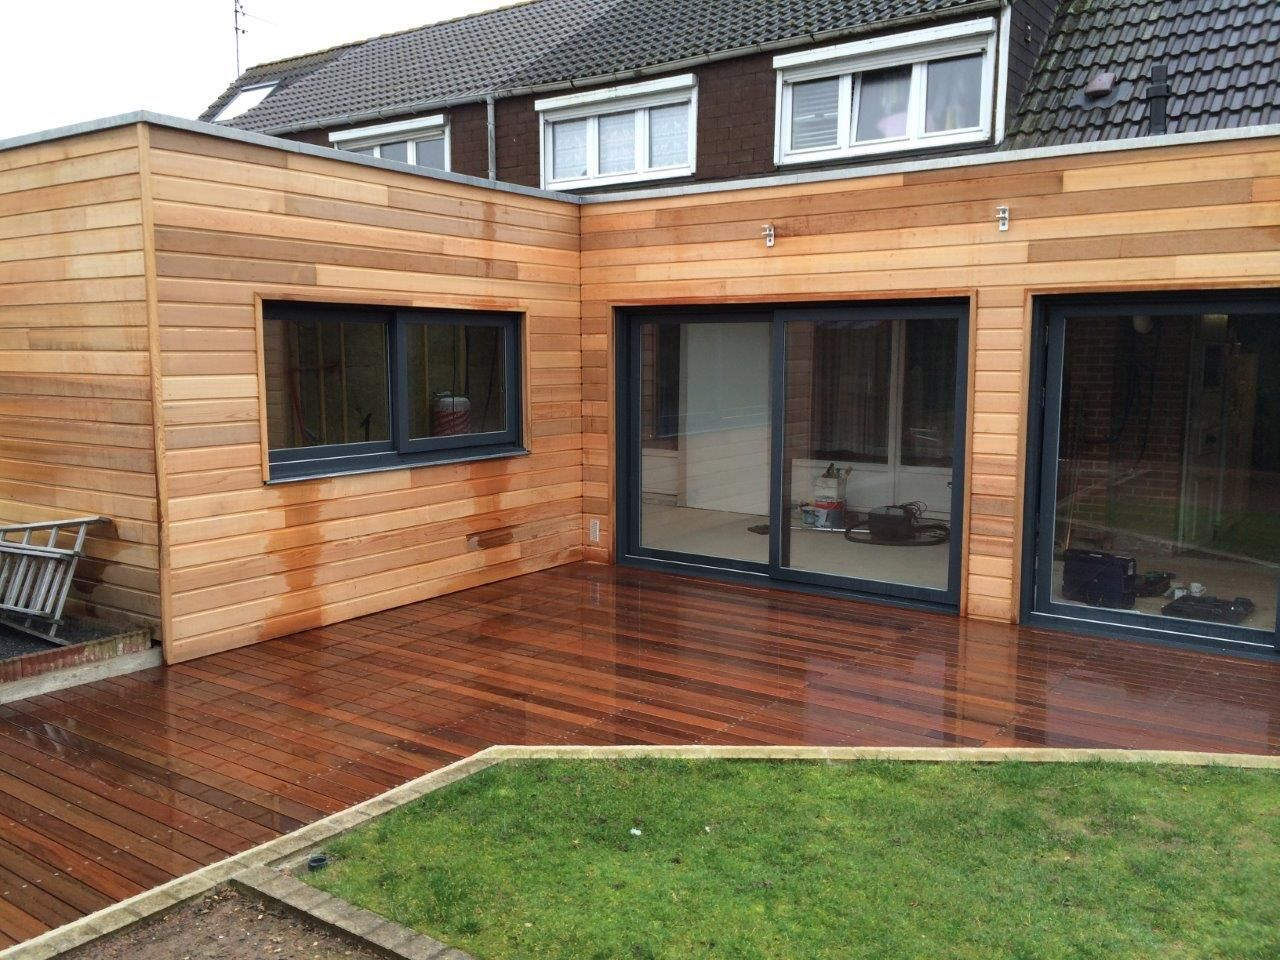 Abri De Terrasse En Kit Extention Bardage Red Cedar Et Terrasse Sur Plots Maison